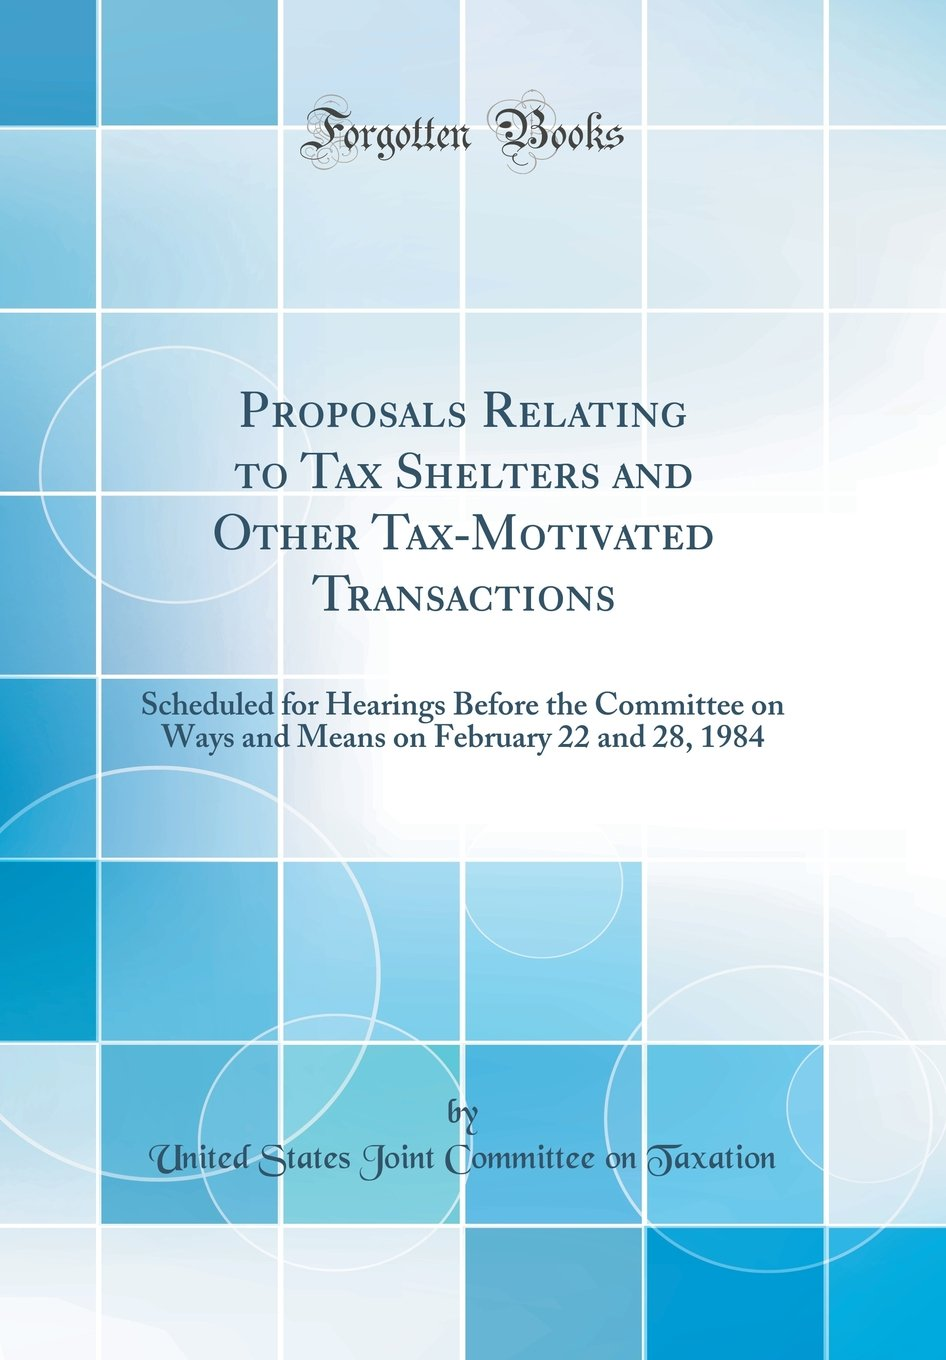 Download Proposals Relating to Tax Shelters and Other Tax-Motivated Transactions: Scheduled for Hearings Before the Committee on Ways and Means on February 22 and 28, 1984 (Classic Reprint) ebook